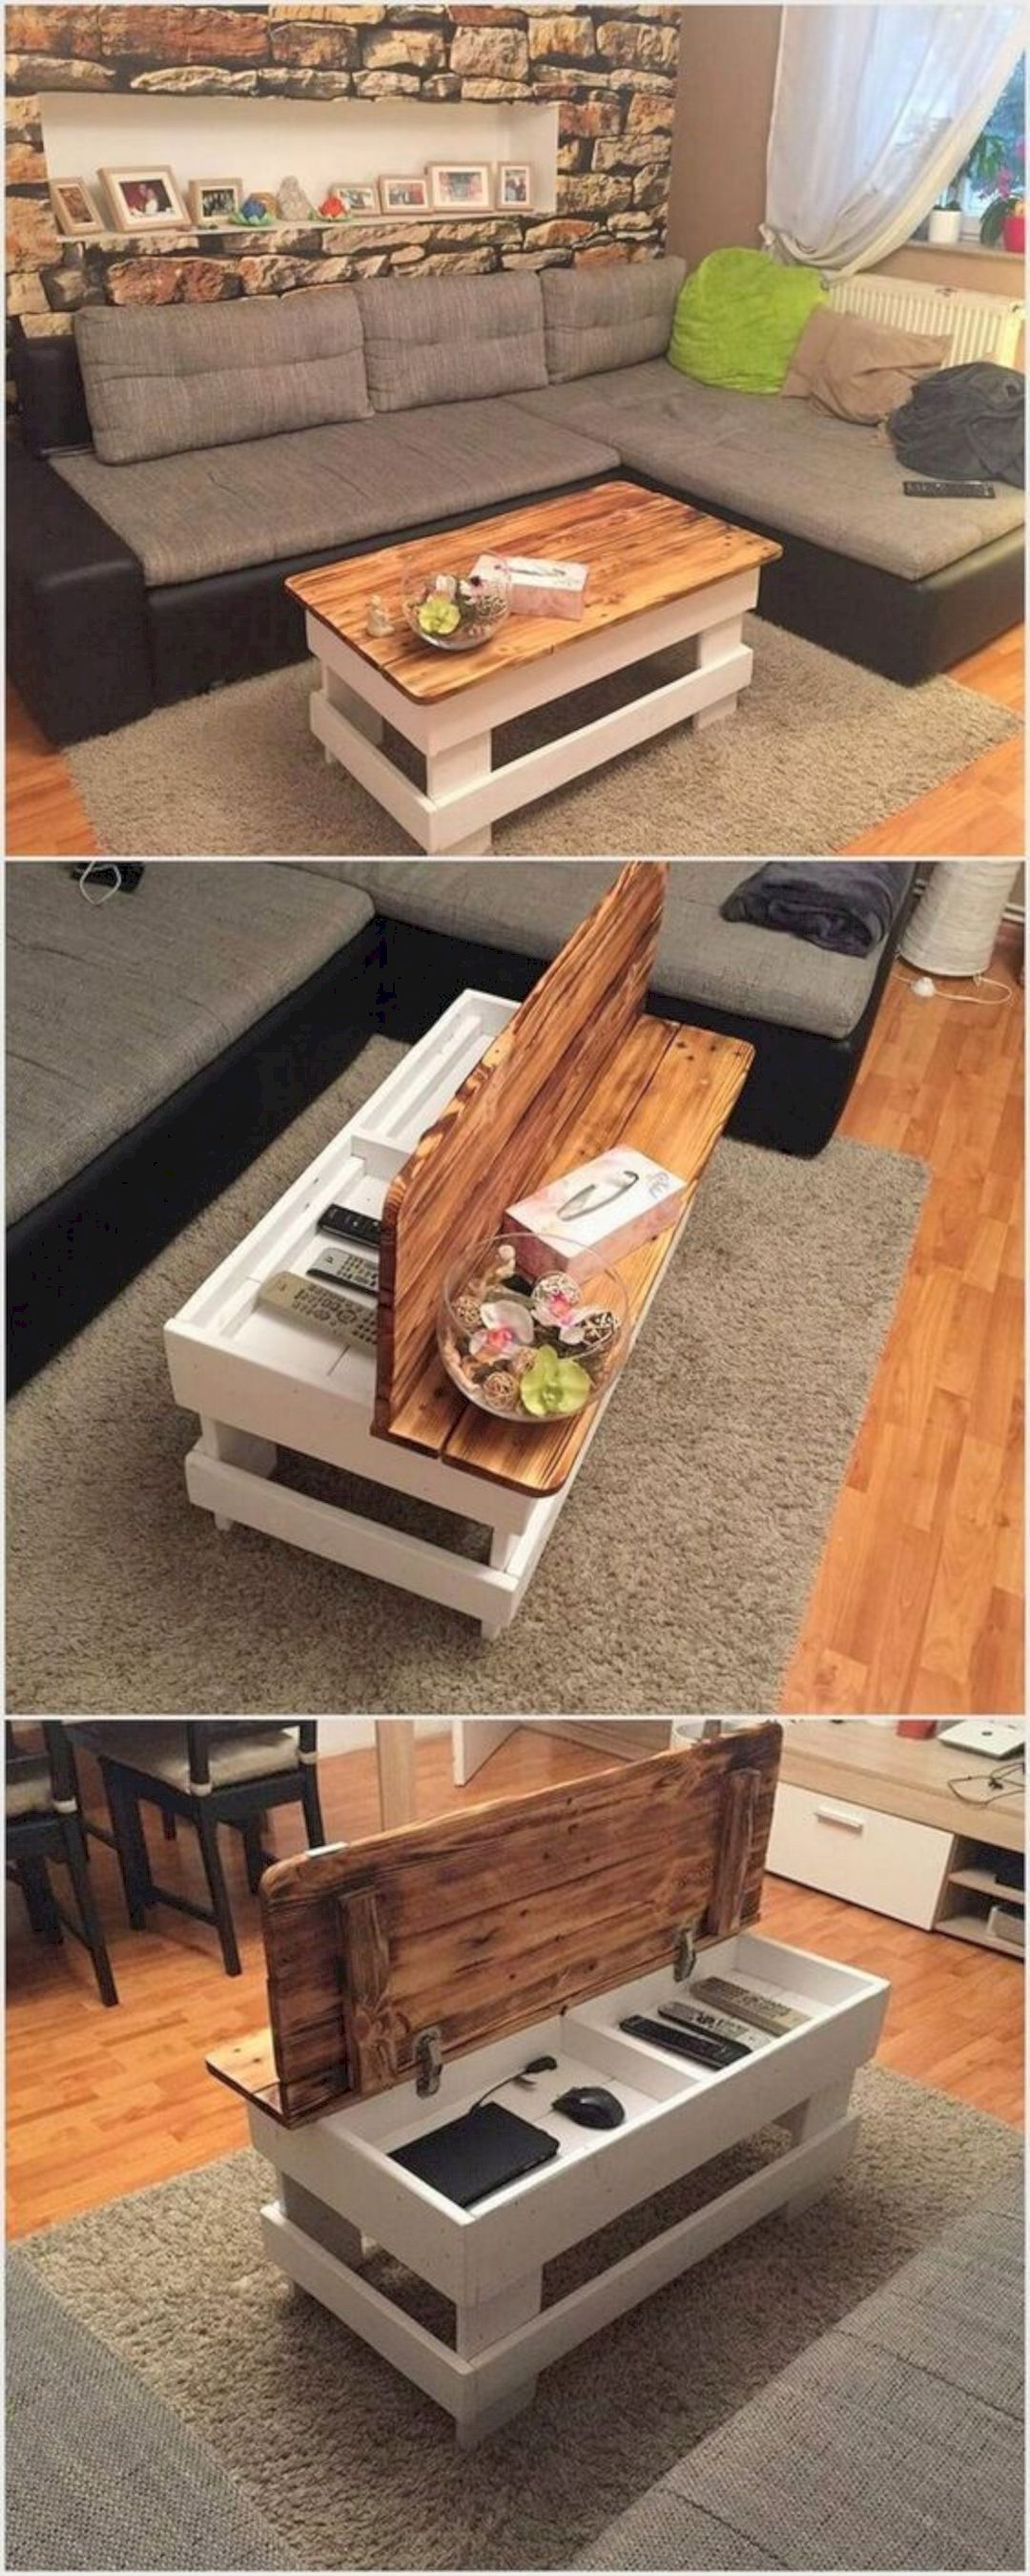 17 Excellent And Creative Ideas For Pallet Furniture 5 Timber  # Muebles Tipo Wimpy